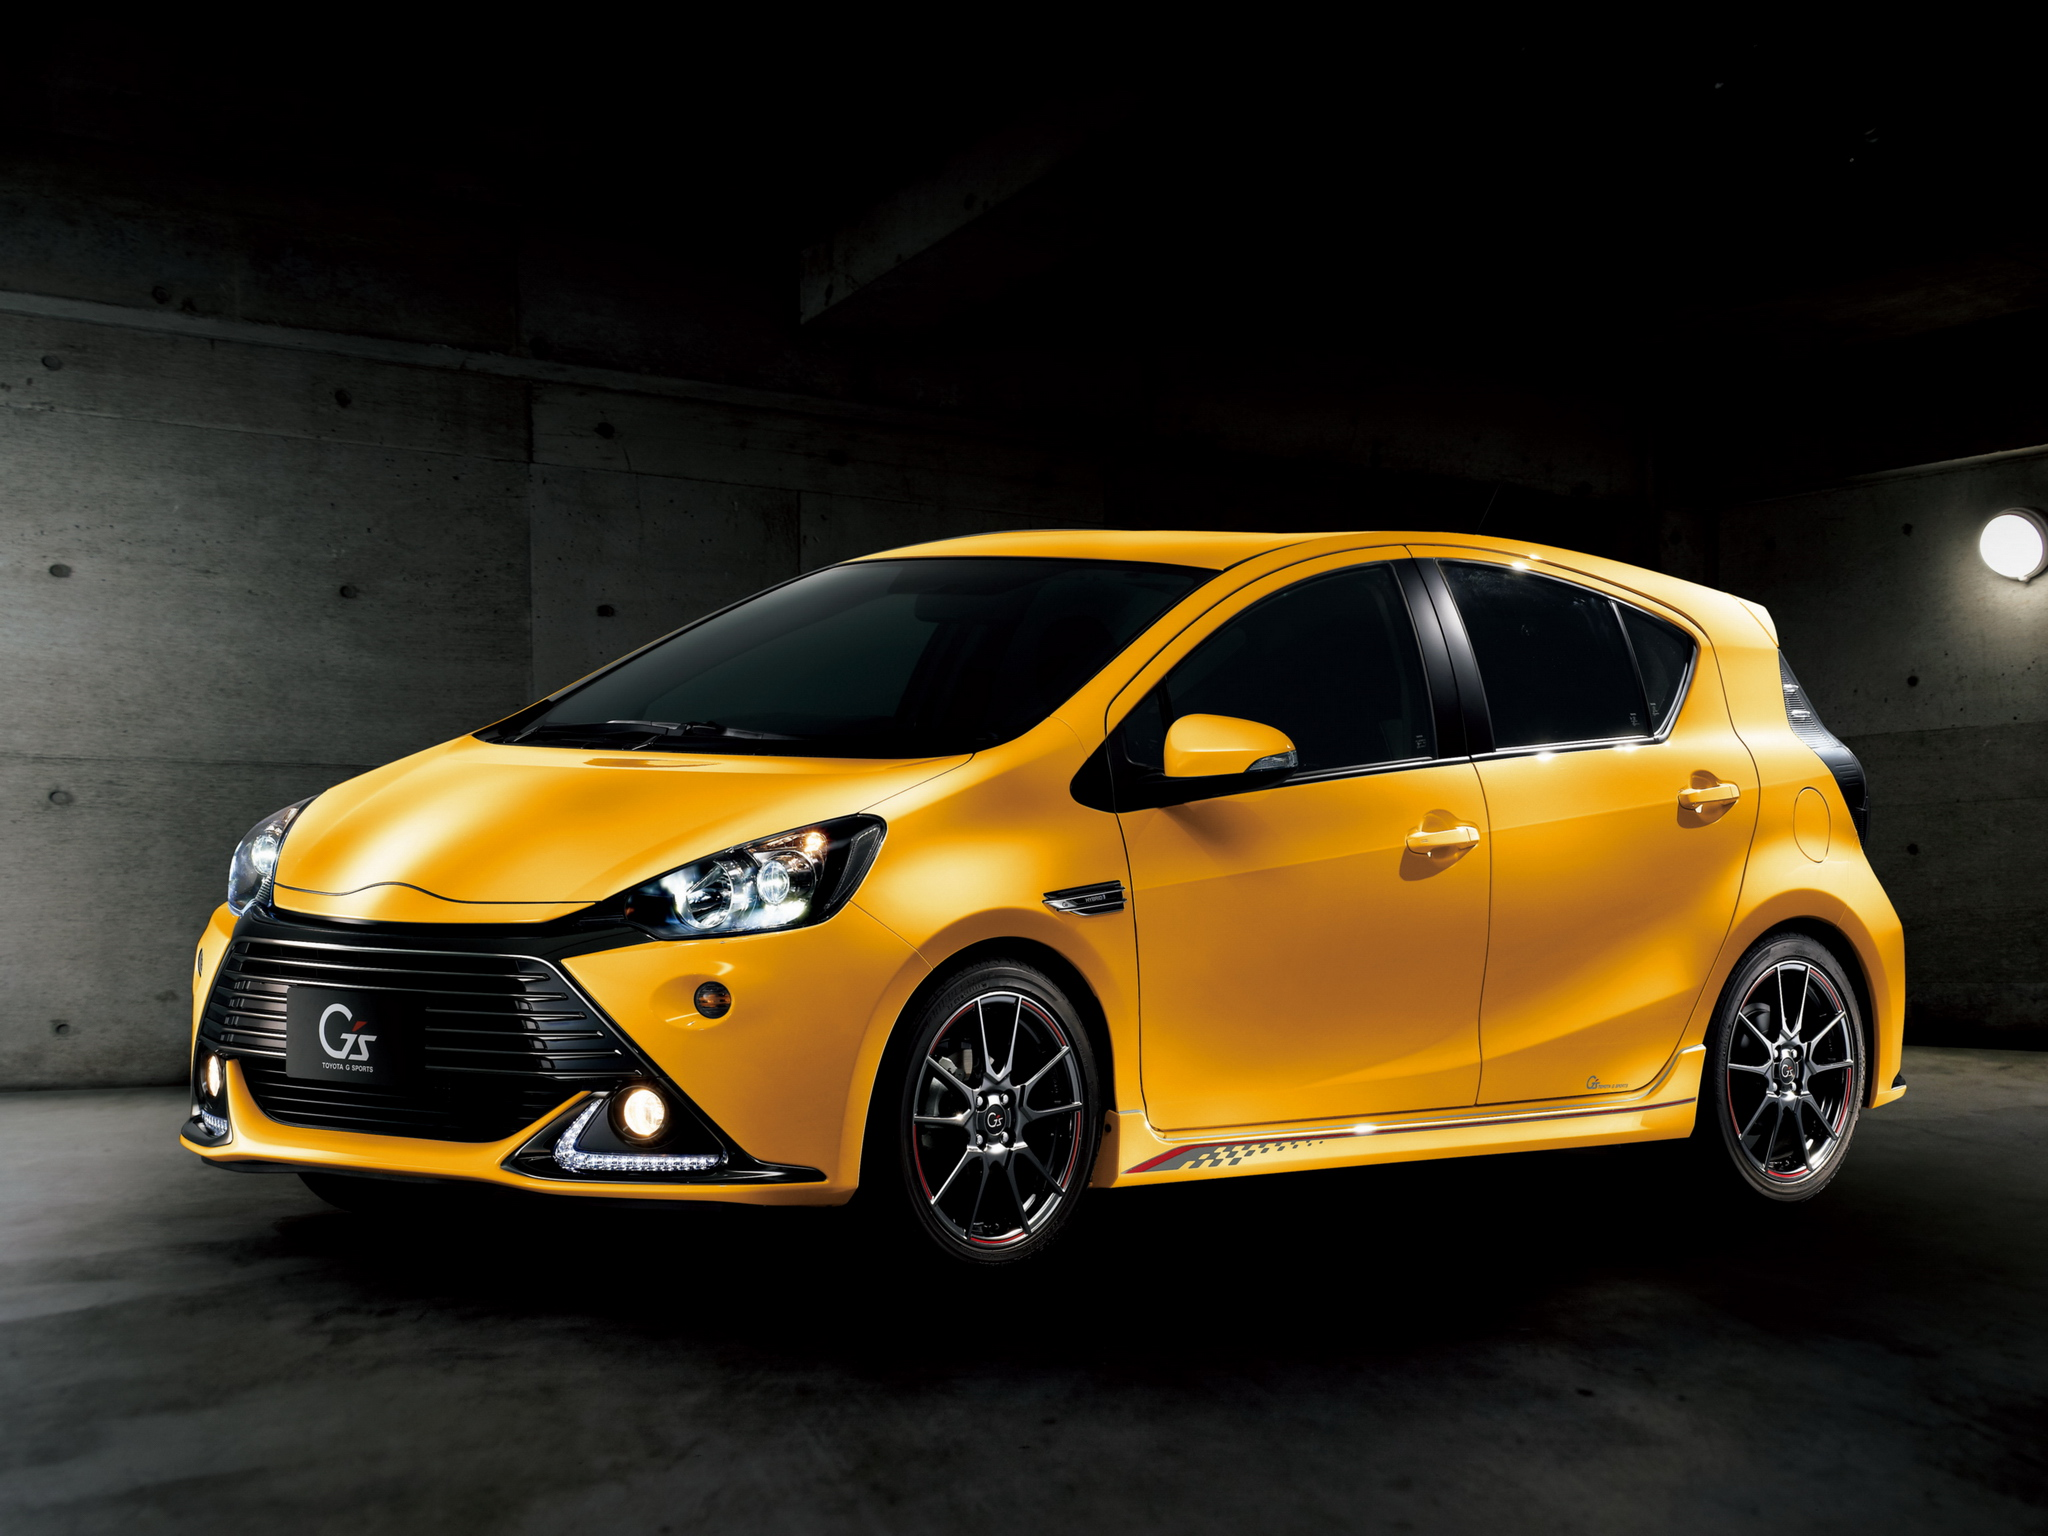 Leader Auto Sales >> Toyota Aqua and Prius Back to Being the Most Popular Cars in Japan - autoevolution